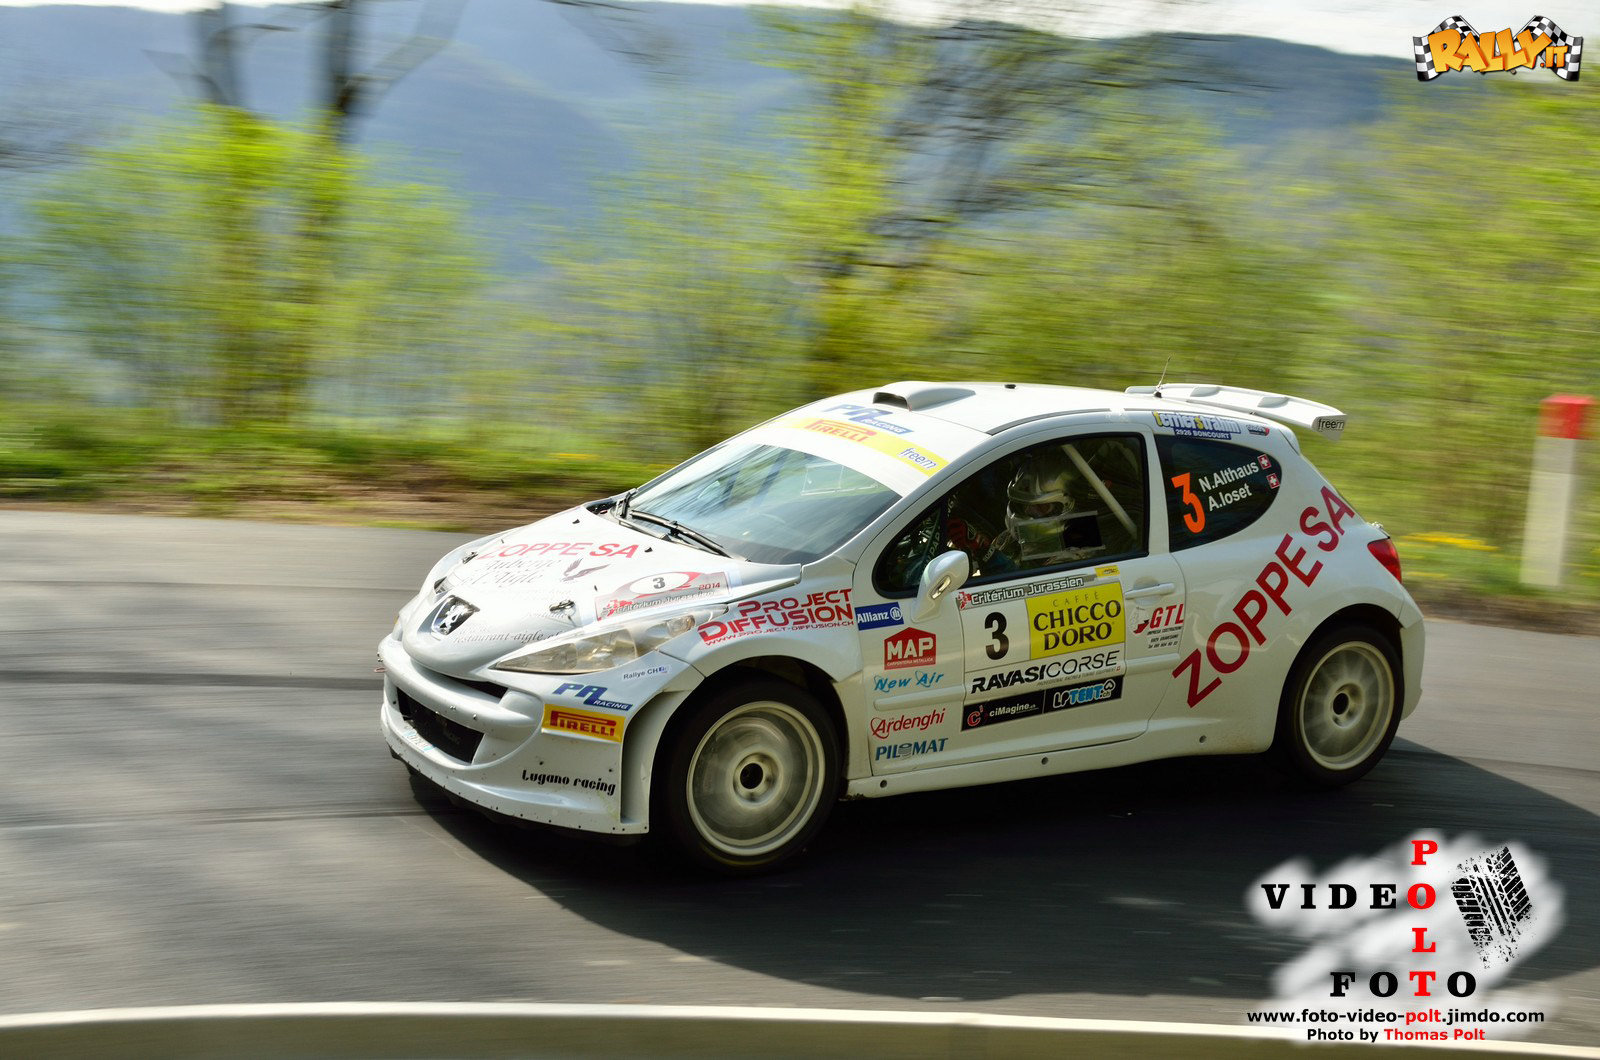 047-Criterium-Jurassien-thomas-polt-2014-rally_it.jpg